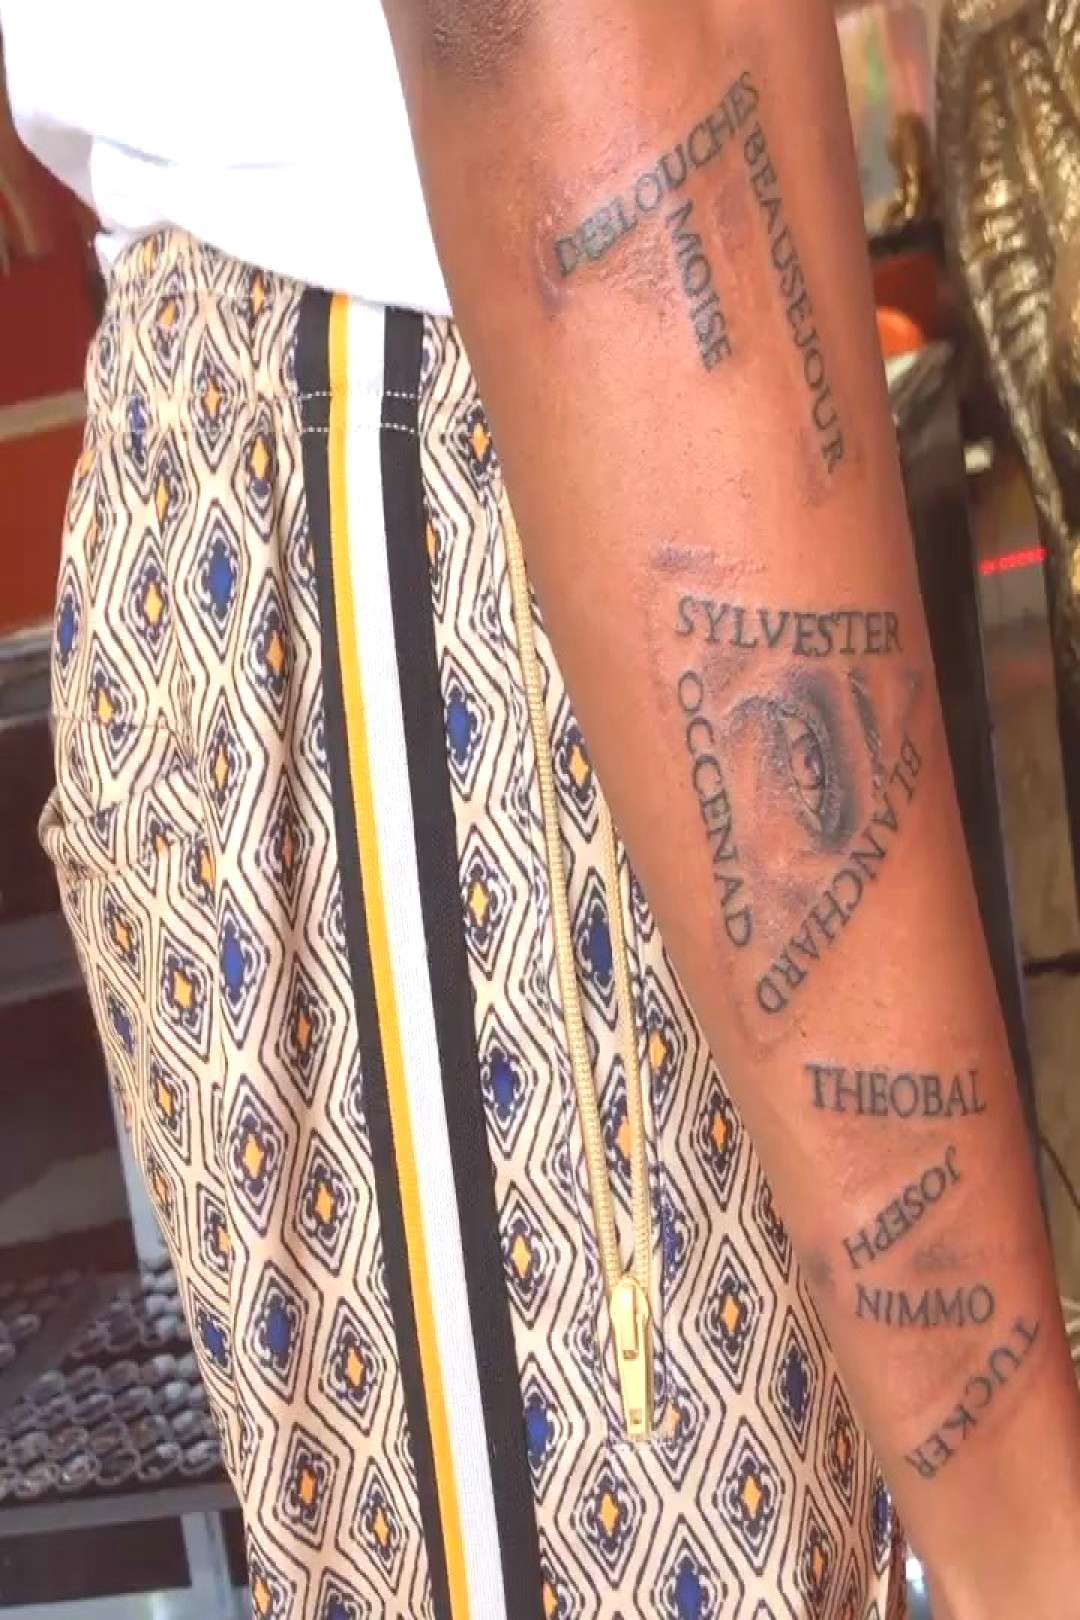 Major ink studios 2 Work done by Angelo can find Name tattoo designs and more on our websiteMajor ink stud